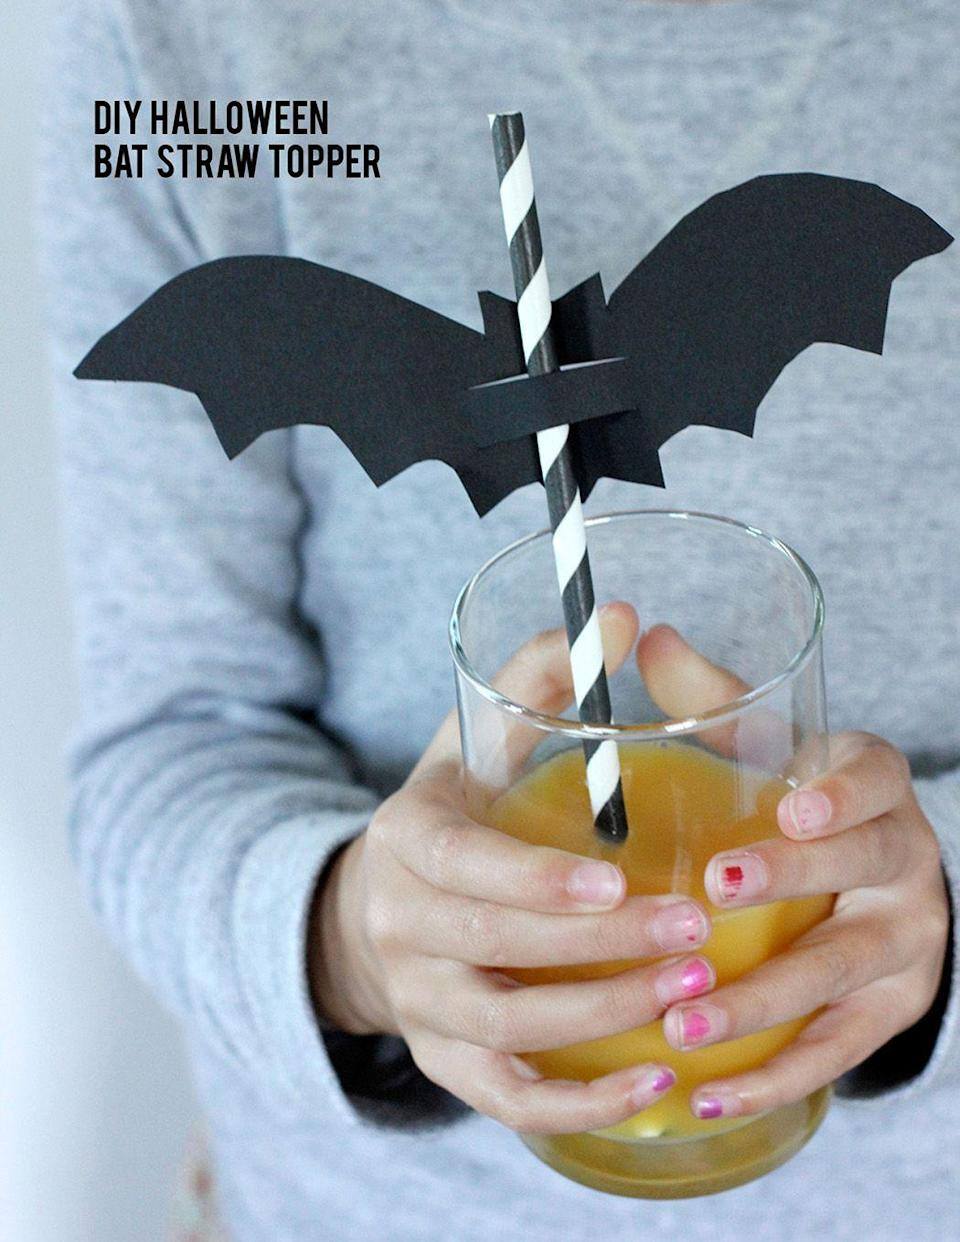 "<p>After all, the presentation is half of the fun. These batty toppers will turn any drink into a spooky treat. </p><p><em><a href=""https://www.aliceandlois.com/diy-halloween-bat-straw-toppers/"" rel=""nofollow noopener"" target=""_blank"" data-ylk=""slk:Get the tutorial from Alice and Lois »"" class=""link rapid-noclick-resp"">Get the tutorial from Alice and Lois »</a></em></p>"